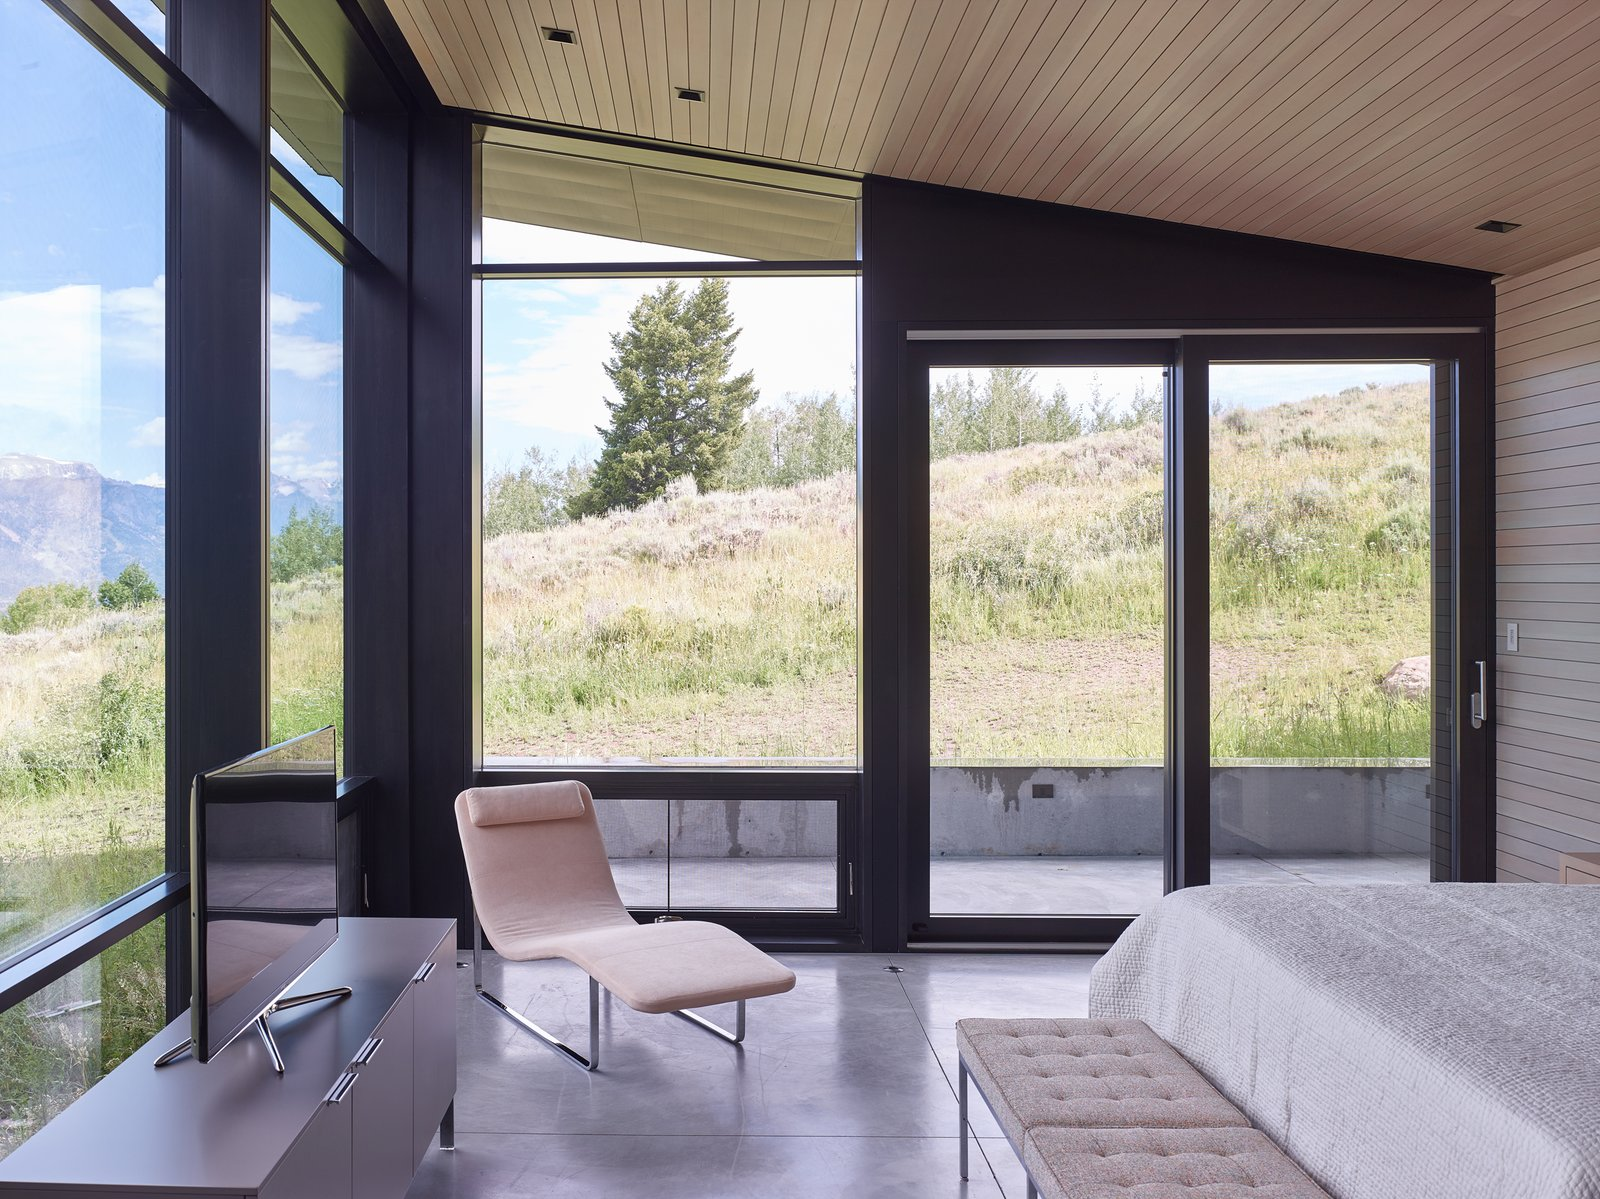 The master bedroom shares in the floor-to-ceiling views, allowing symbiosis with the meadow outside. Tagged: Bedroom, Bed, Chair, Concrete Floor, Bench, and Recessed Lighting.  Wyoming Residence by Abramson Teiger Architects